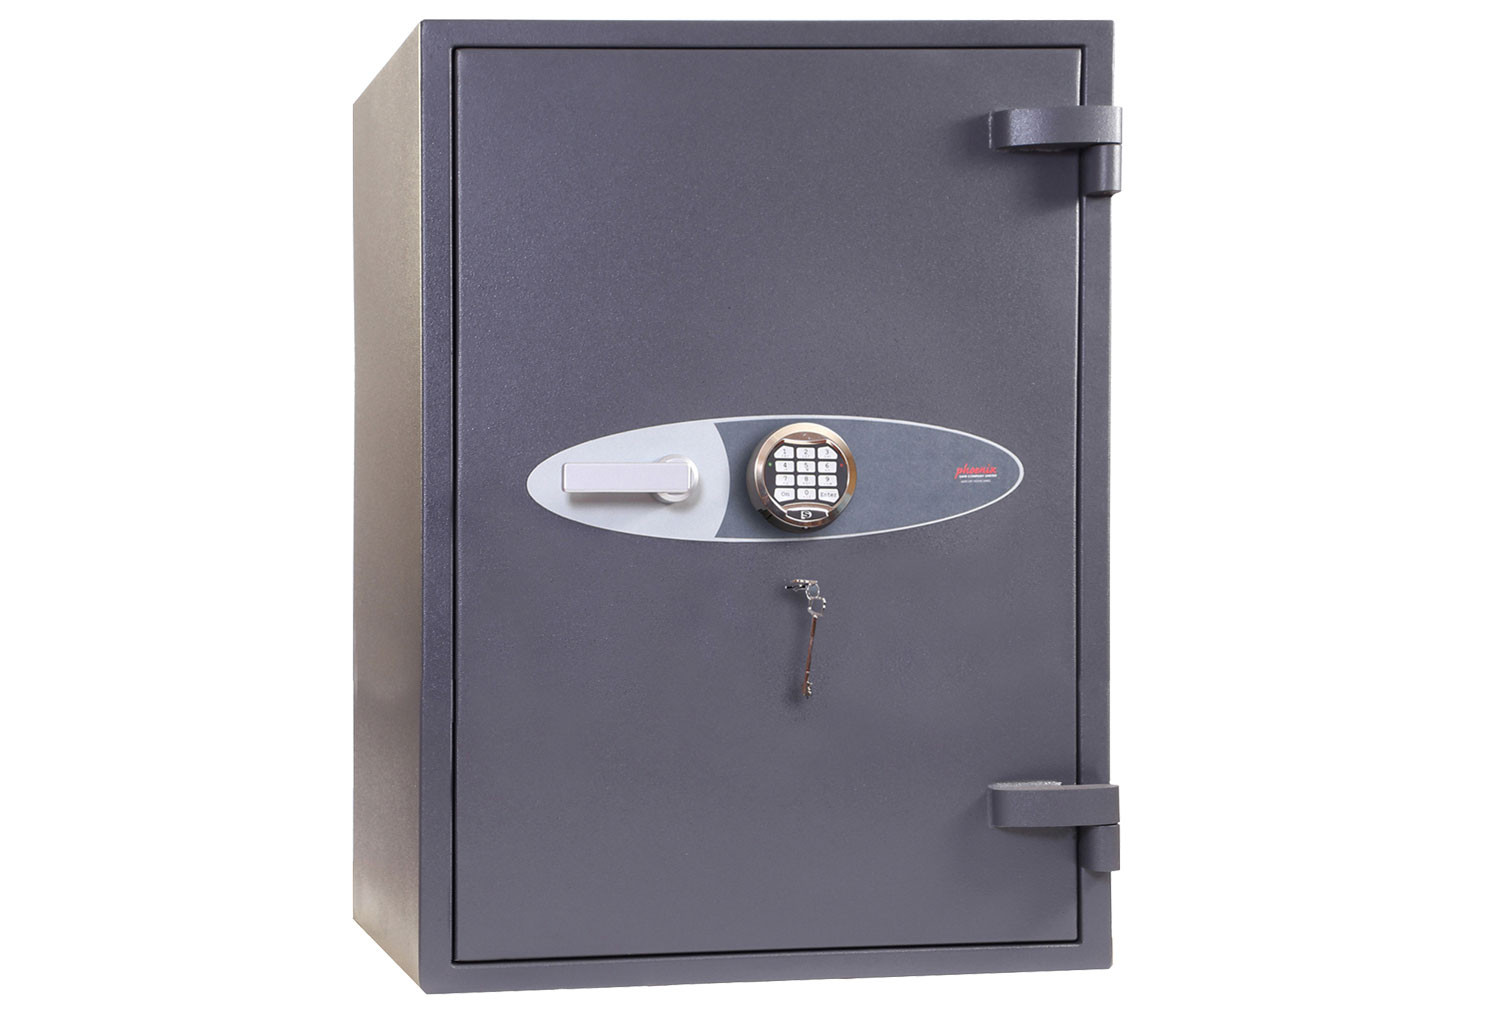 Phoenix Planet HS6076E High Security Safe With Electronic Lock (395ltrs)